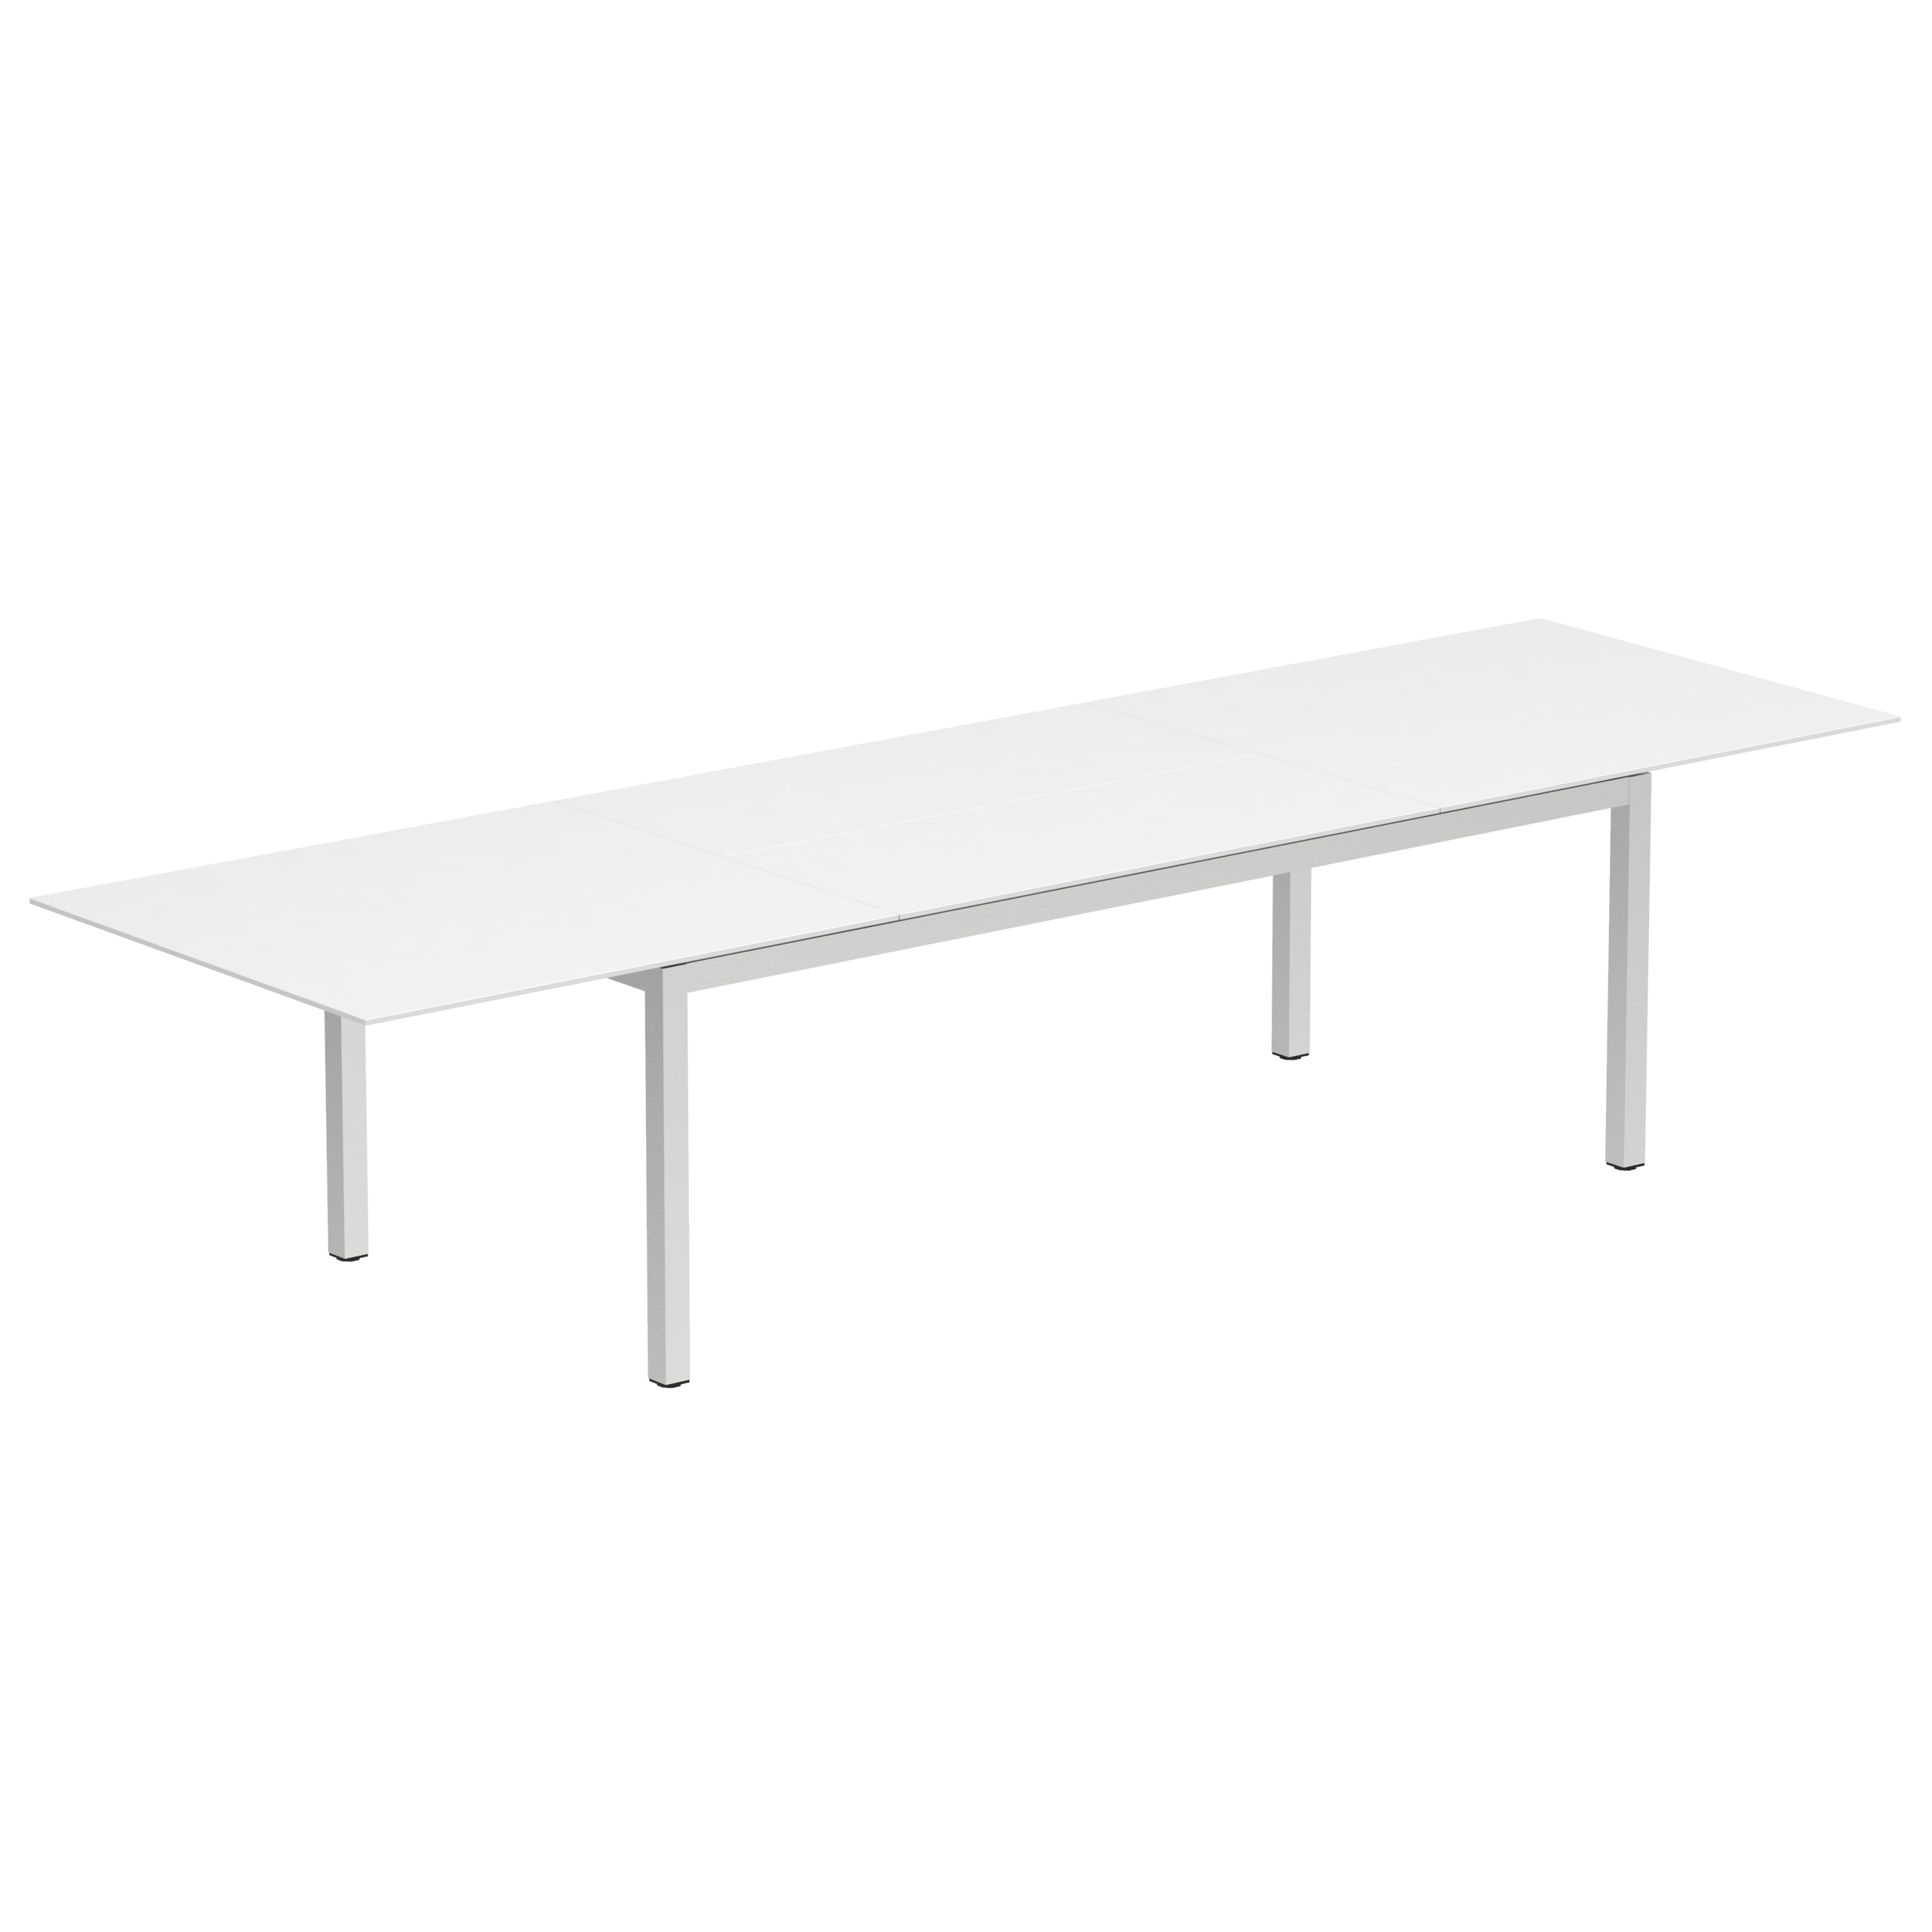 Taboela Extending Tables